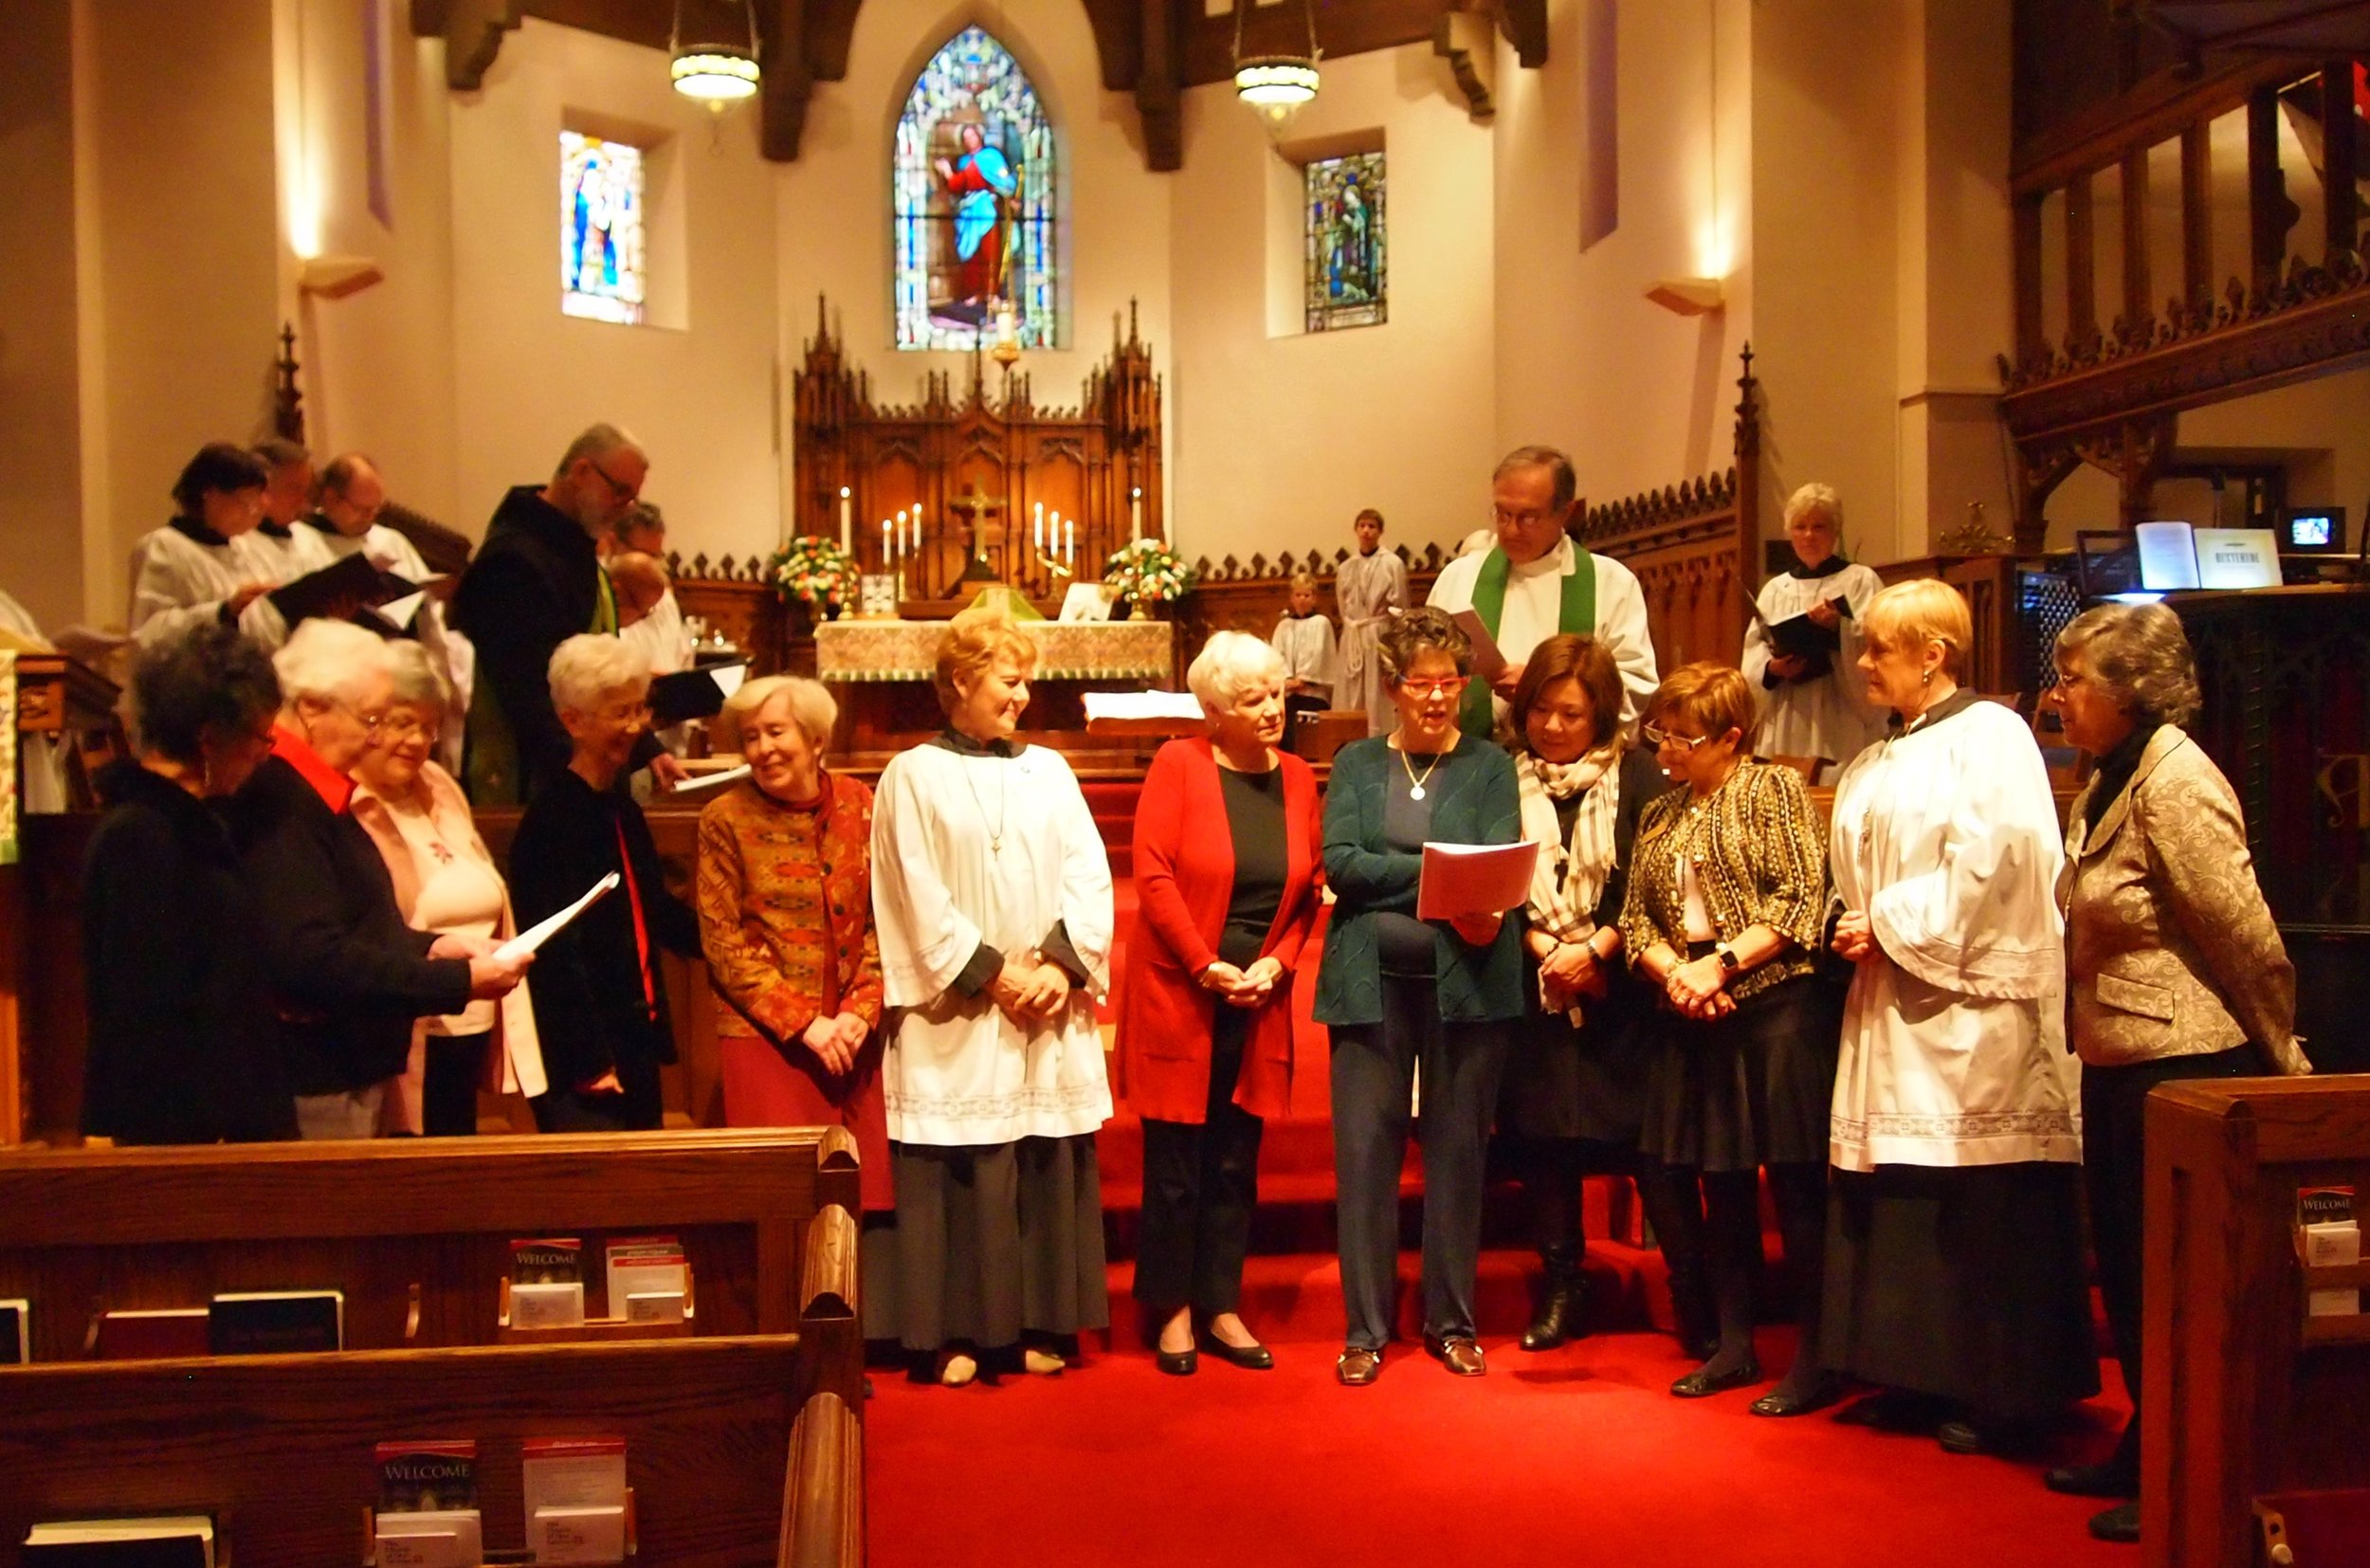 Commissioning of the Altar Guild February 5th, 2017